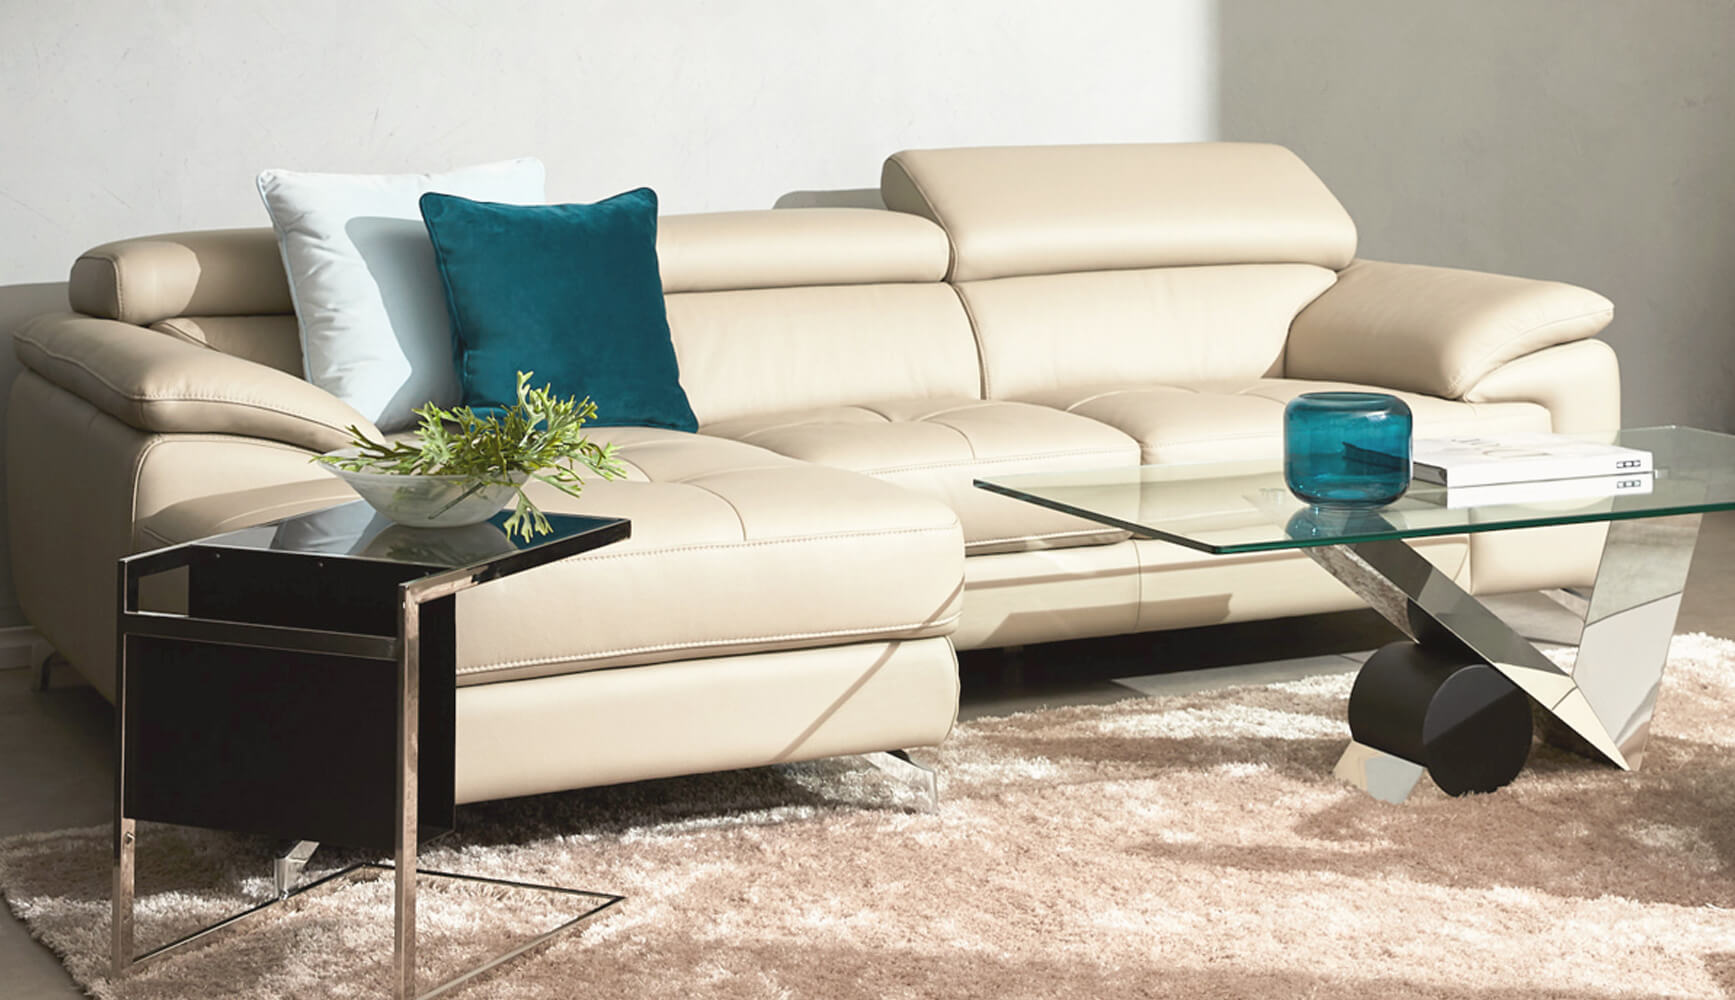 How to care for your leather sofas? & How to care for your leather sofas? \u2014 Koala Living